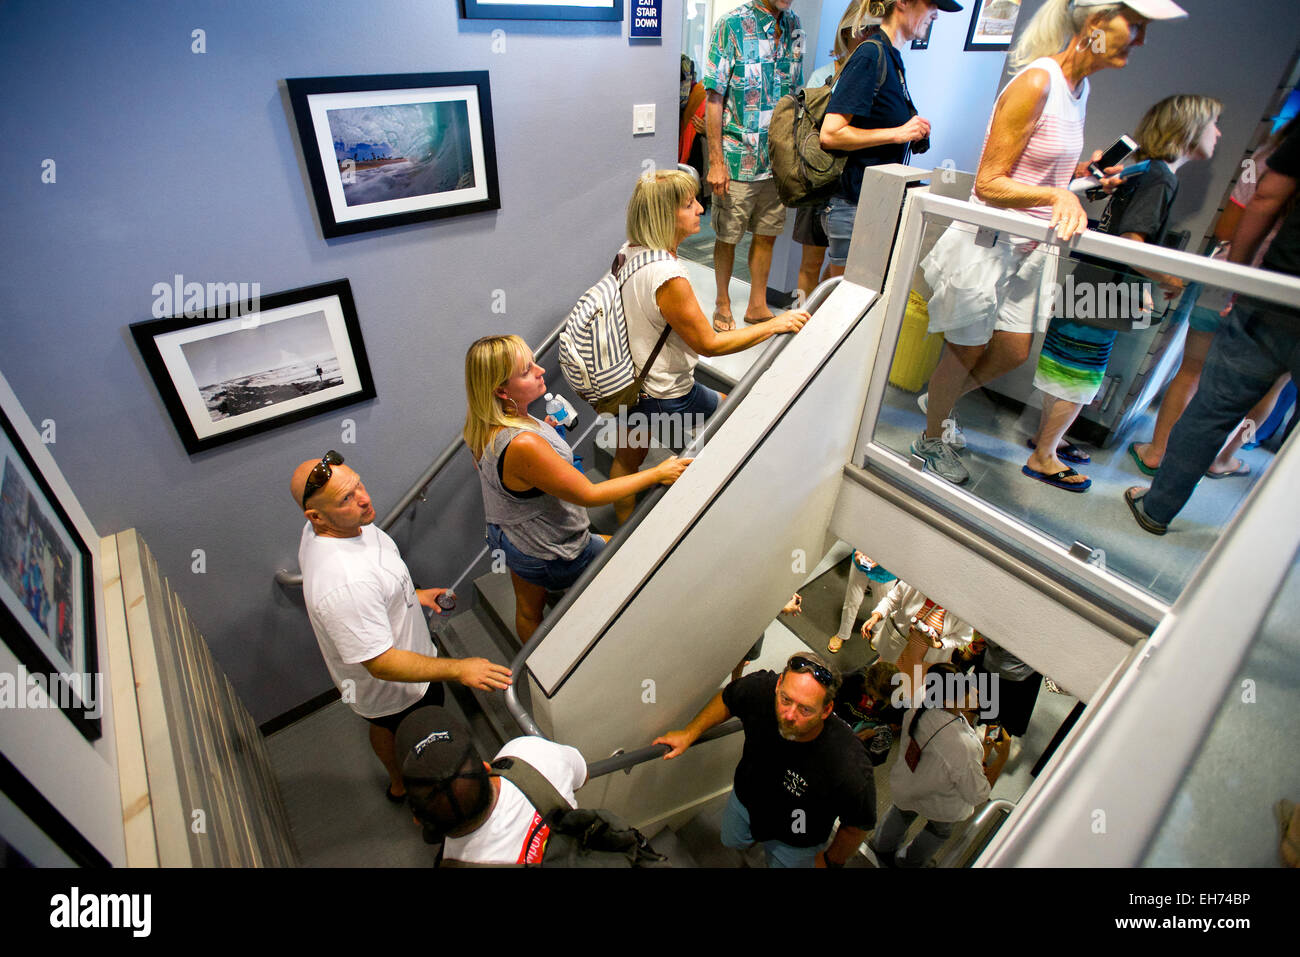 Newport Beach, California, USA. 8th March, 2015. Community members tour the the newly renovated lifeguard headquarters - Stock Image